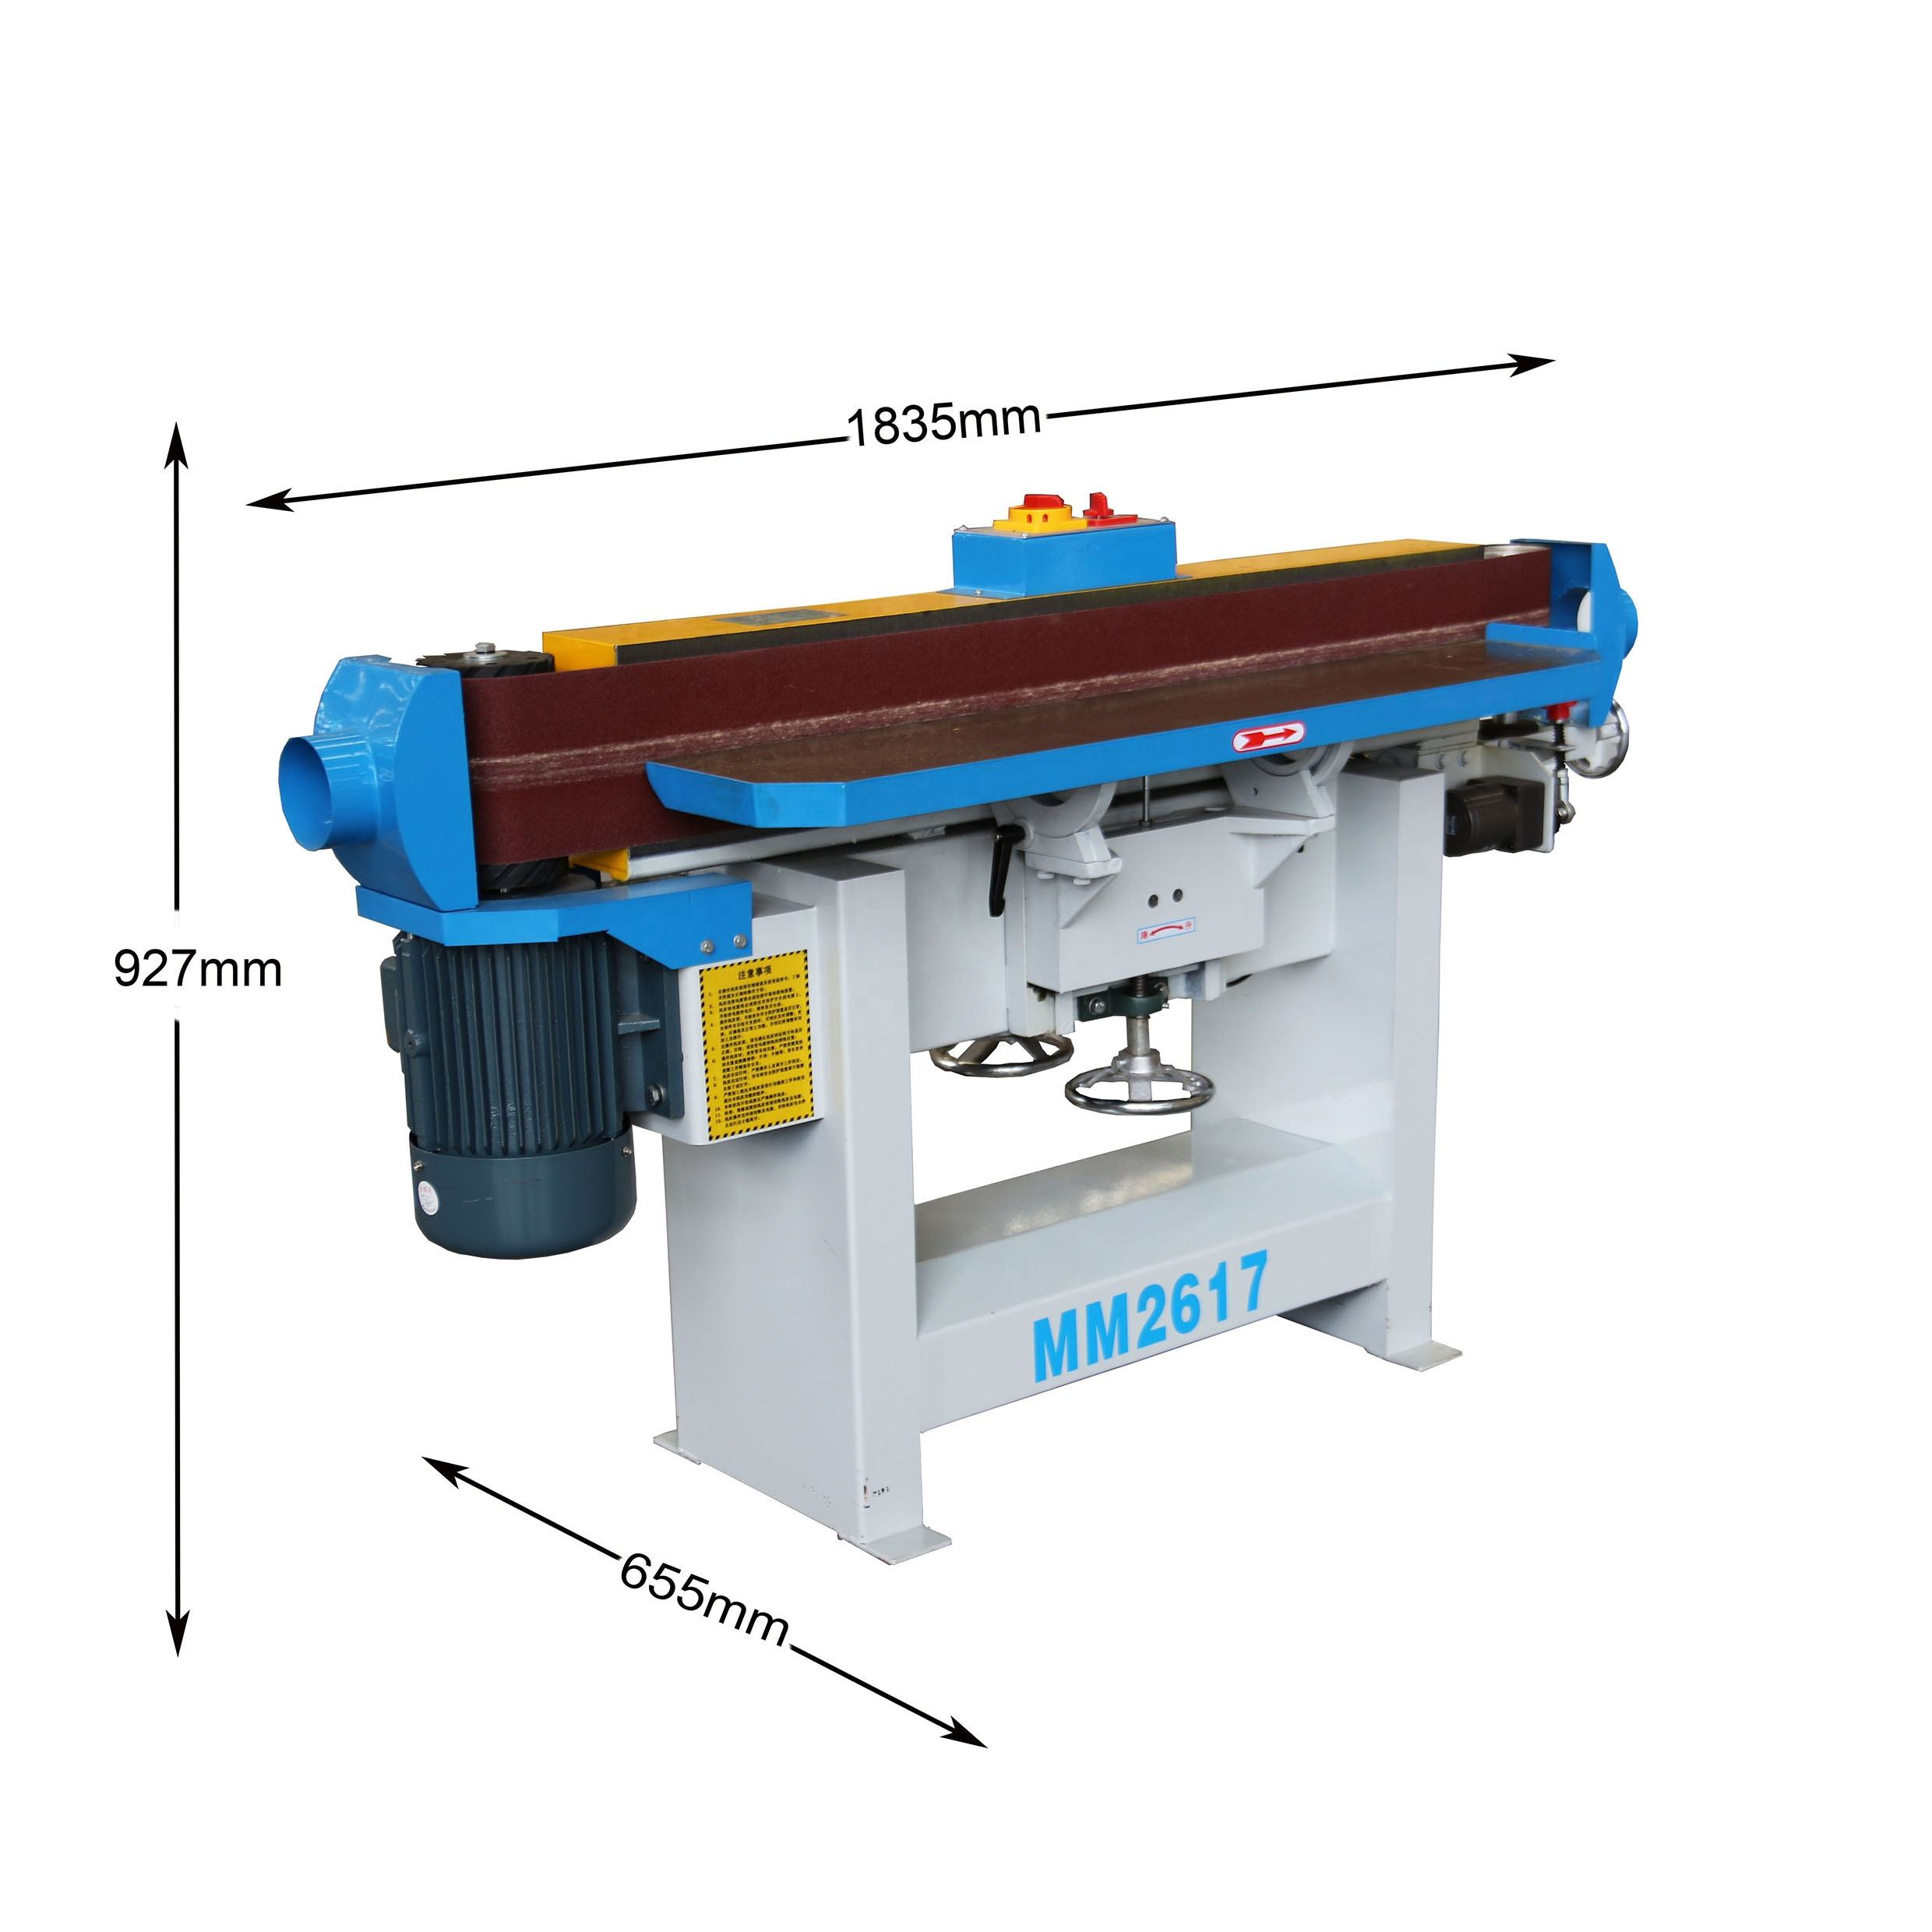 oscillating edge sanding machine for wood Belt sander for polishing curved wood